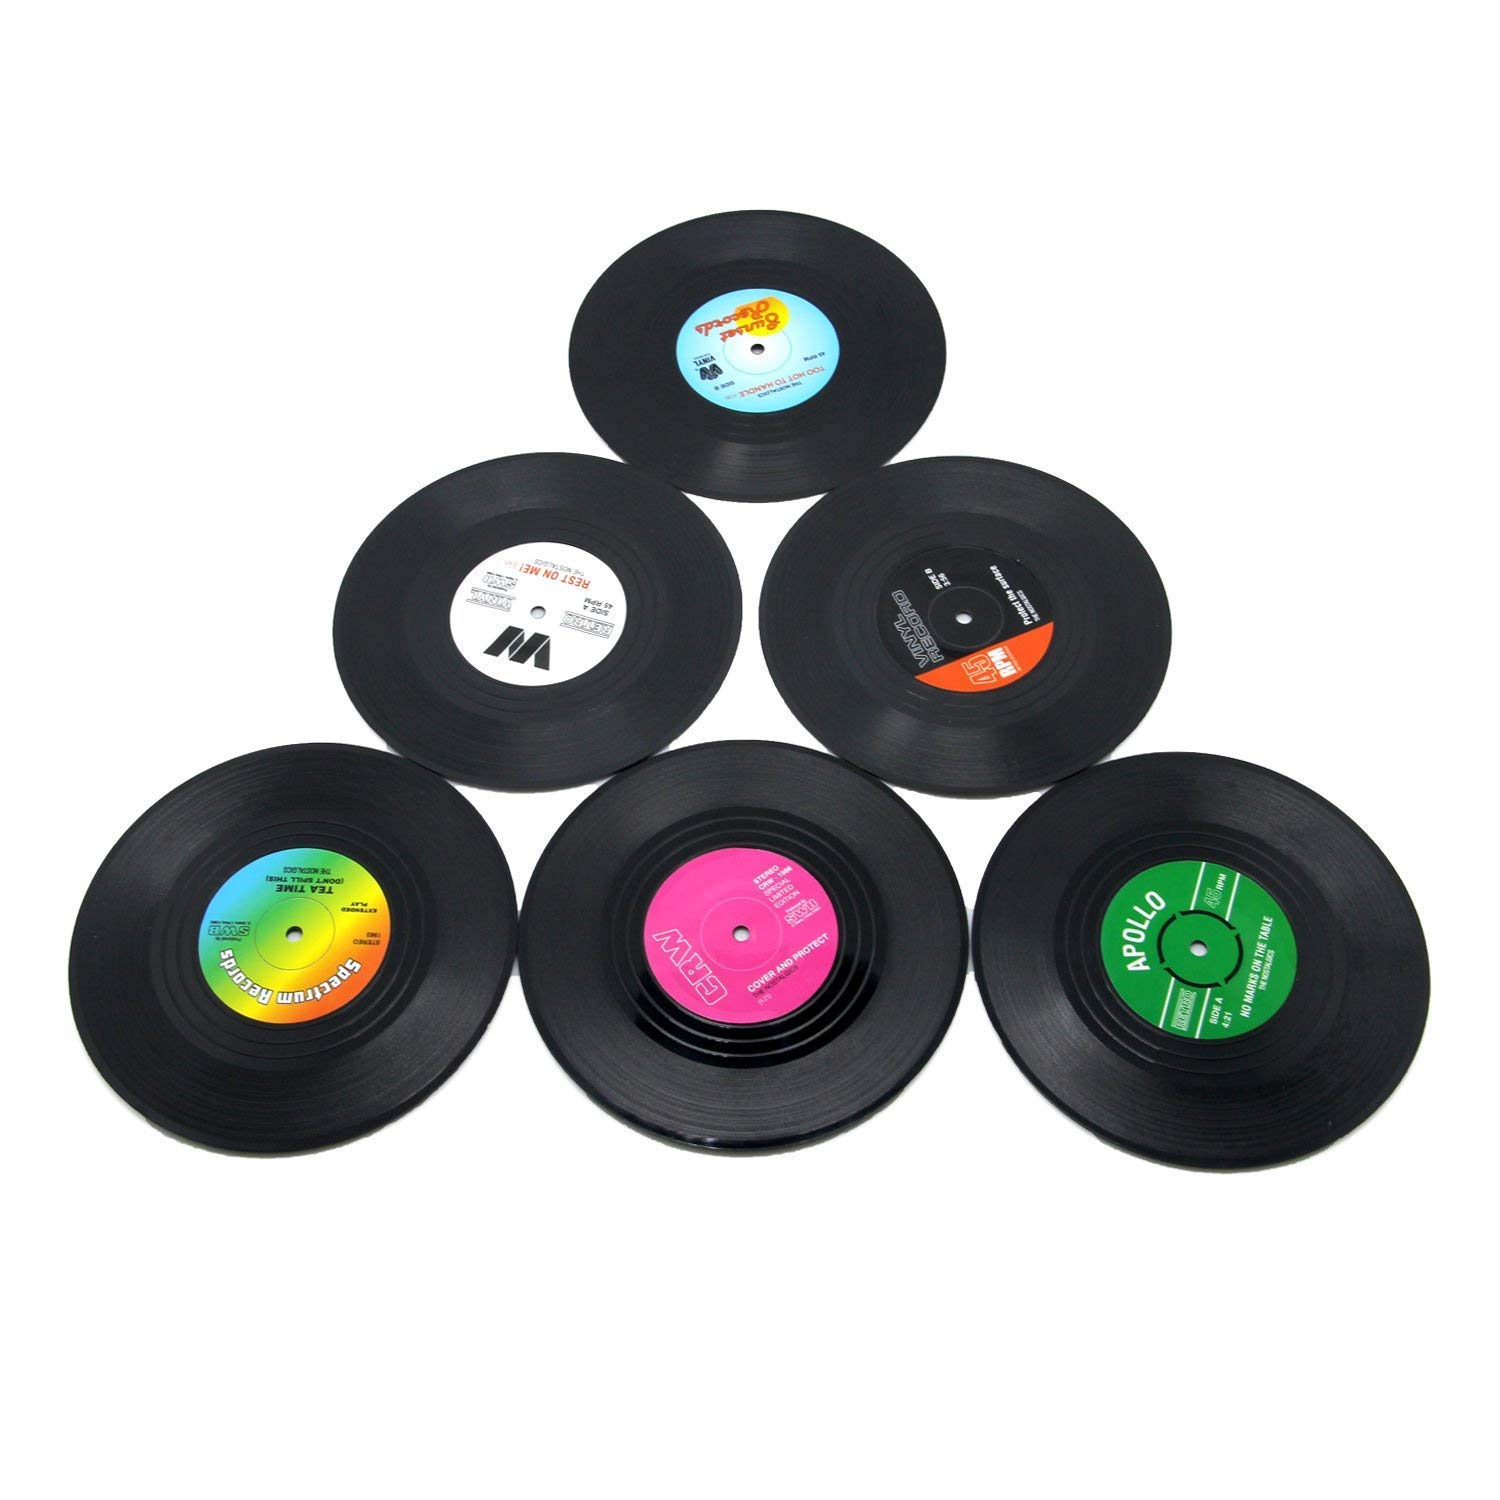 Coasters For Drinks By Hirun Set Of 6 Vinyl Record Retro Music Coasters Art Car Bar Tea Coffee Table Mug Beer Bottle Buy Online In Guernsey At Guernsey Desertcart Com Productid 33464916